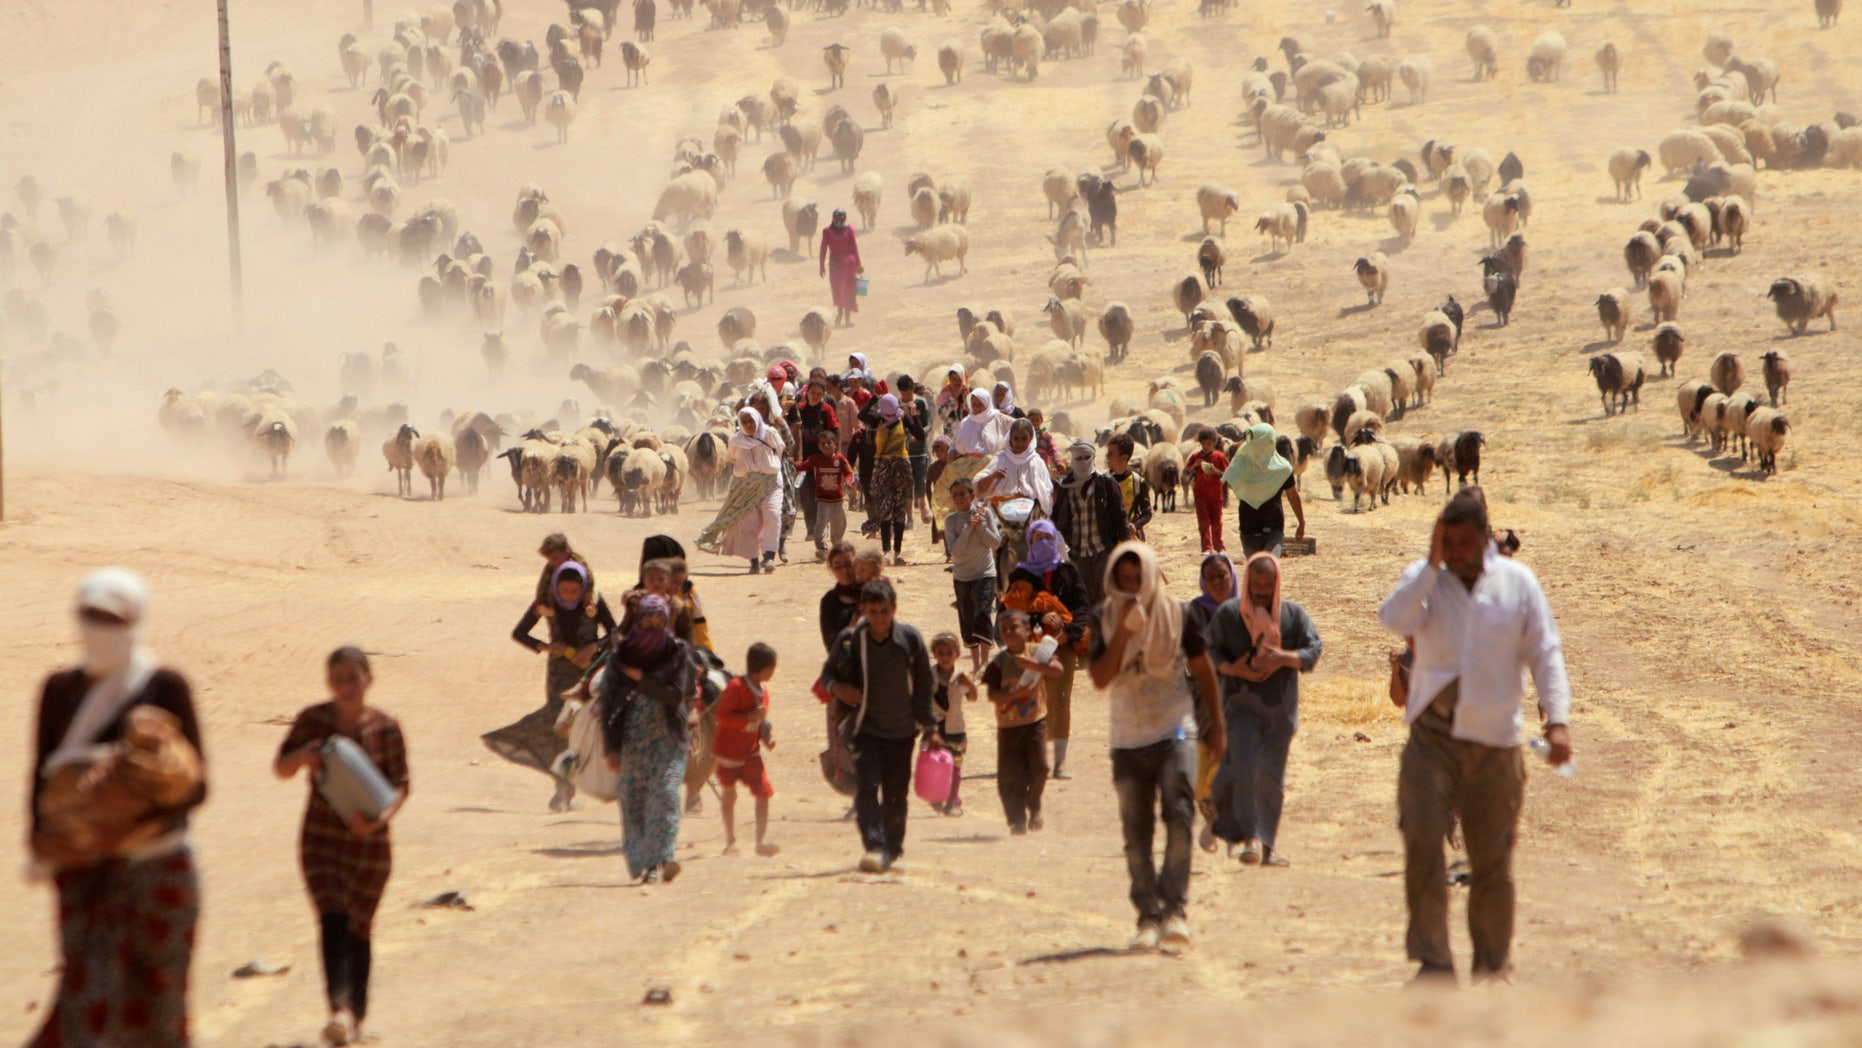 Displaced people from the minority Yazidi sect, fleeing violence from forces loyal to the Islamic State in Sinjar town, walk towards the Syrian border, on the outskirts of Sinjar mountain, near the Syrian border town of Elierbeh of Al-Hasakah Governorate August 10, 2014. REUTERS/Rodi Said/File Photo - RTX2GIYQ